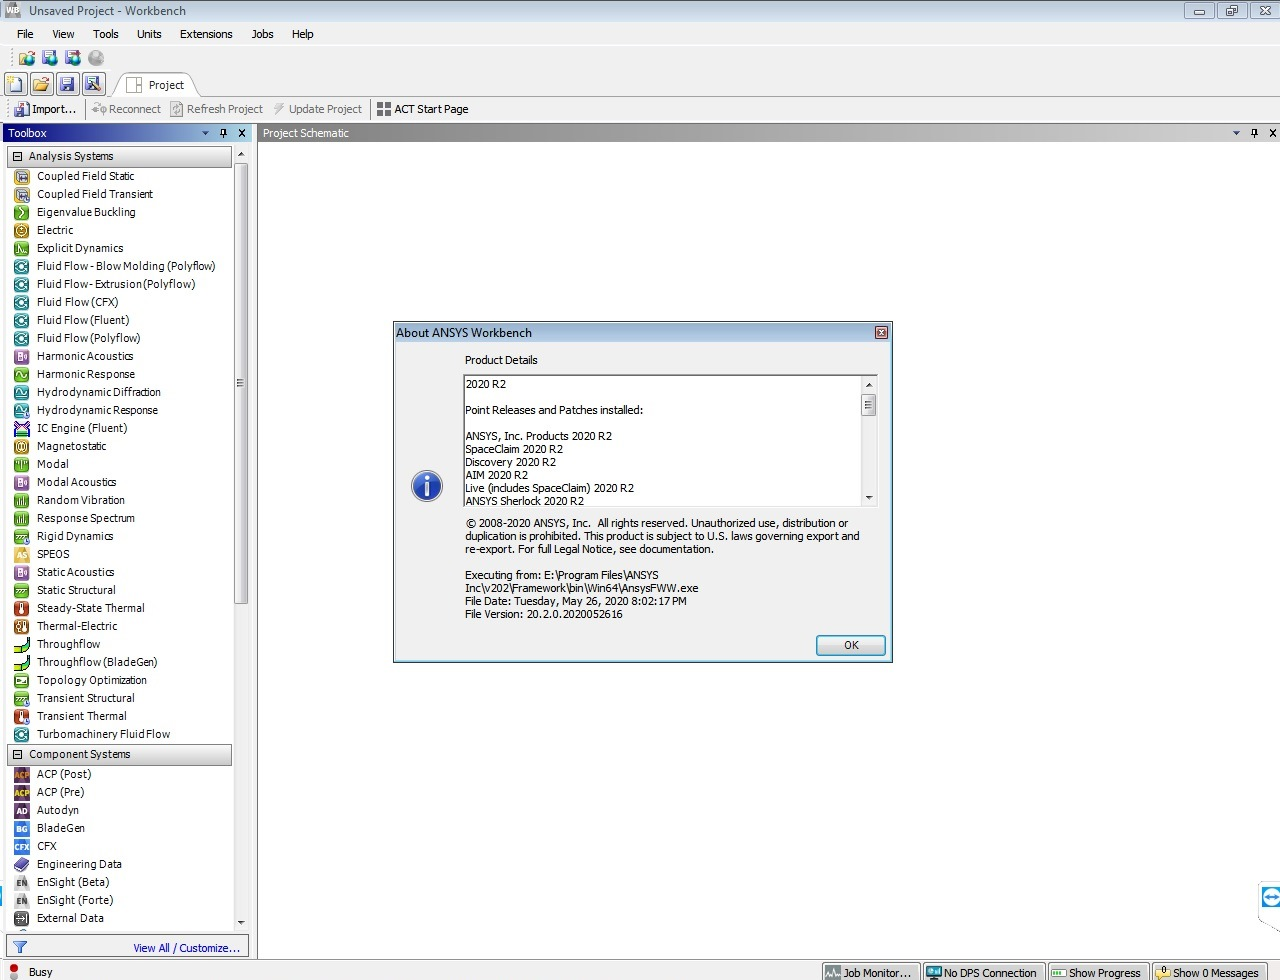 Working with ANSYS Products 2020 R2 Linux64 full license